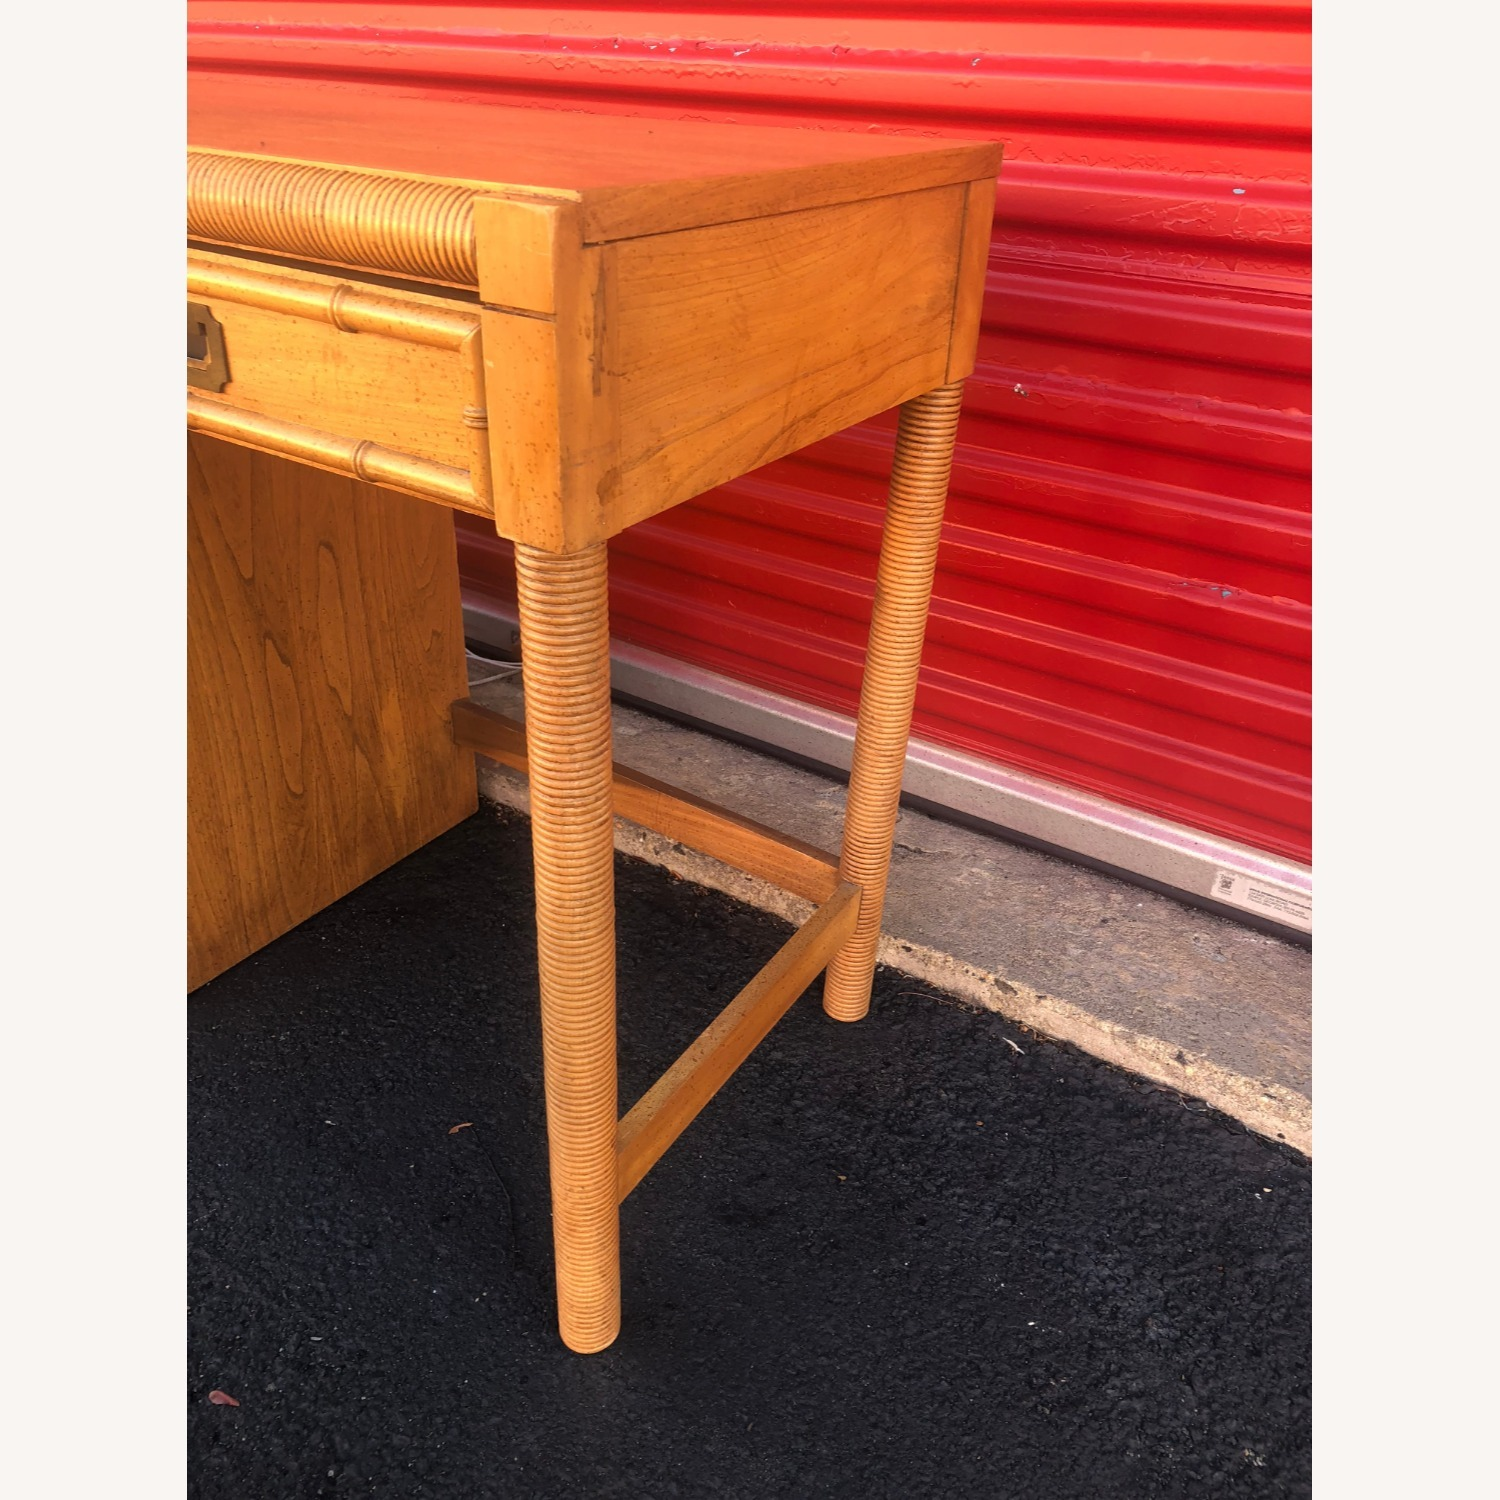 Vintage Campaign Style Writing Desk with 4 Drawers - image-5